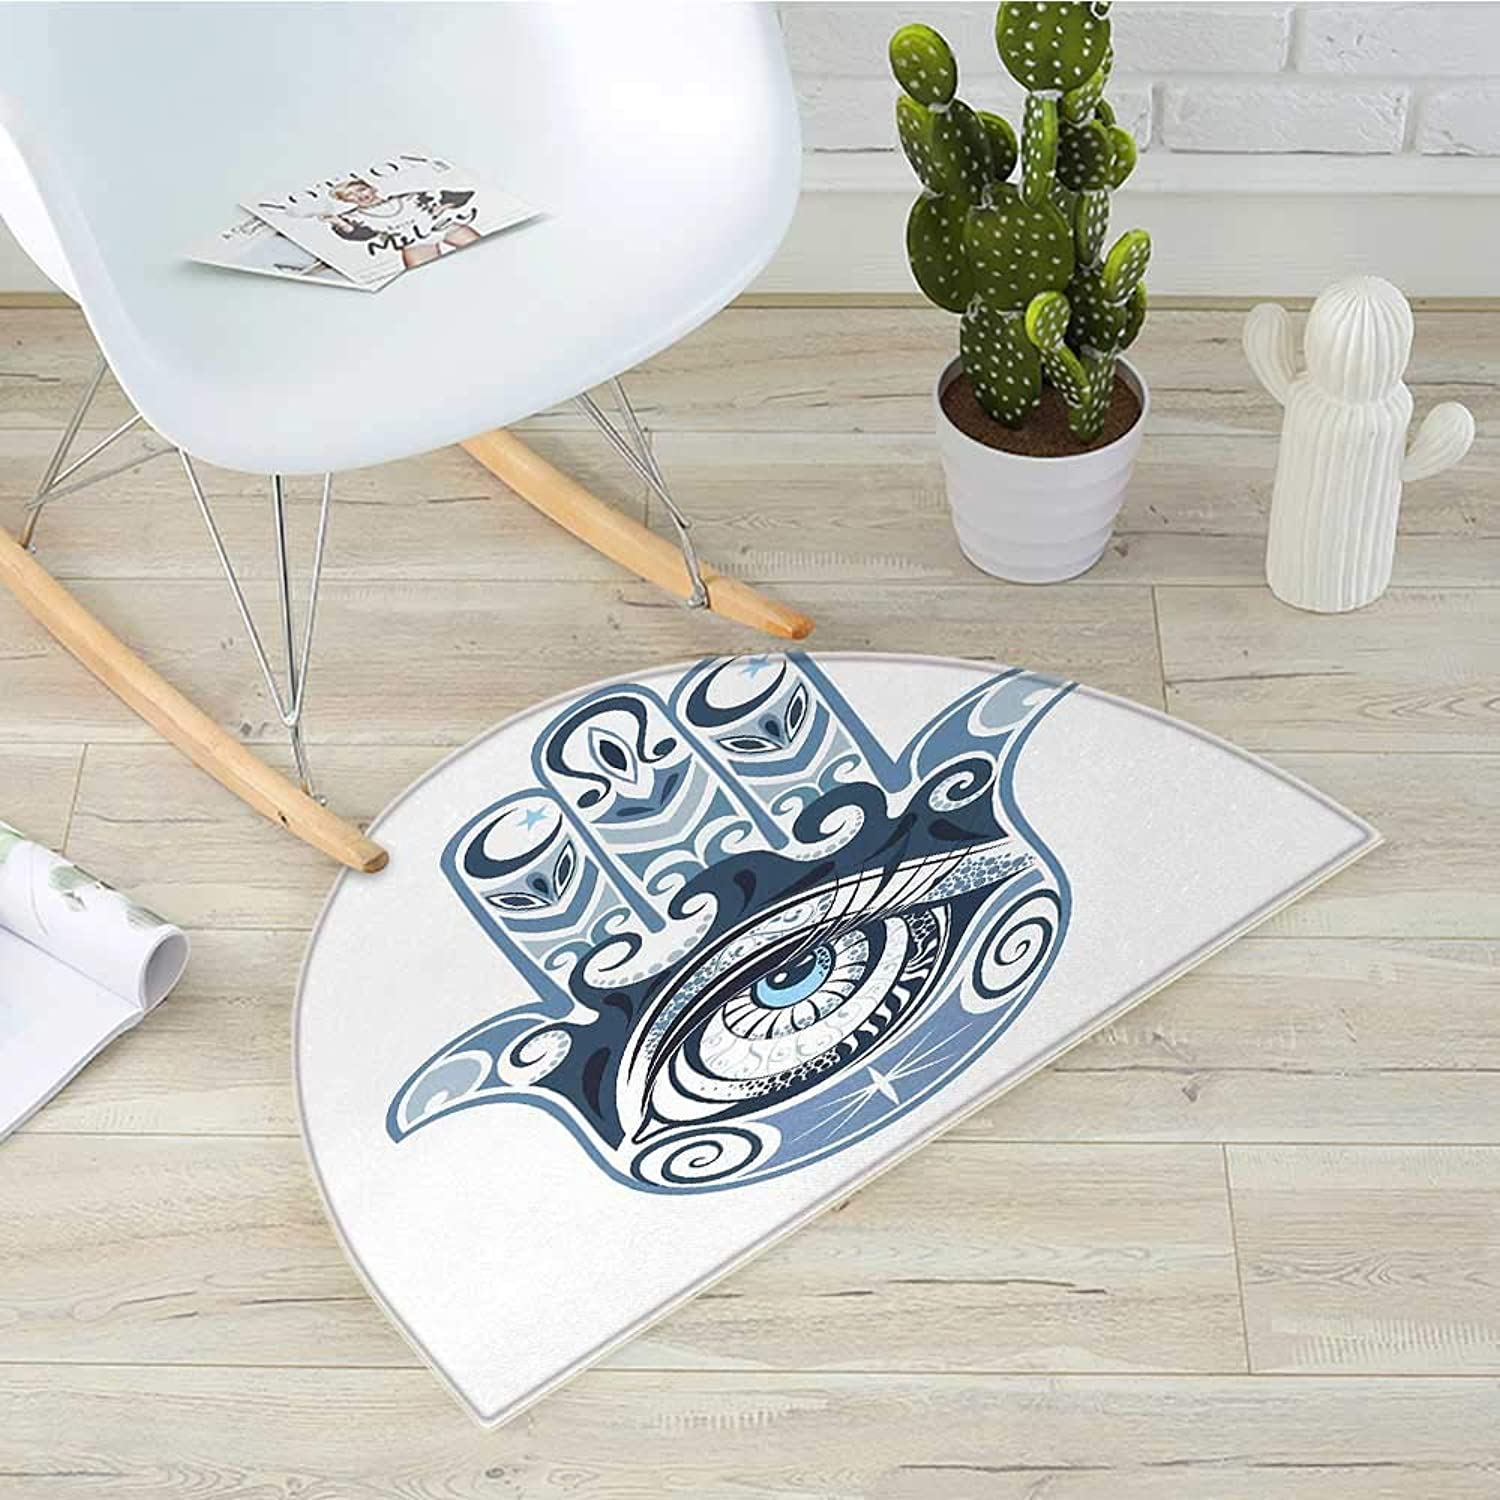 Evil Eye Semicircle Doormat Cultural Good Luck Amulet Hand Drawn Artsy Magical Superstitious Sacred Halfmoon doormats H 19.7  xD 31.5  Dark bluee Pale bluee